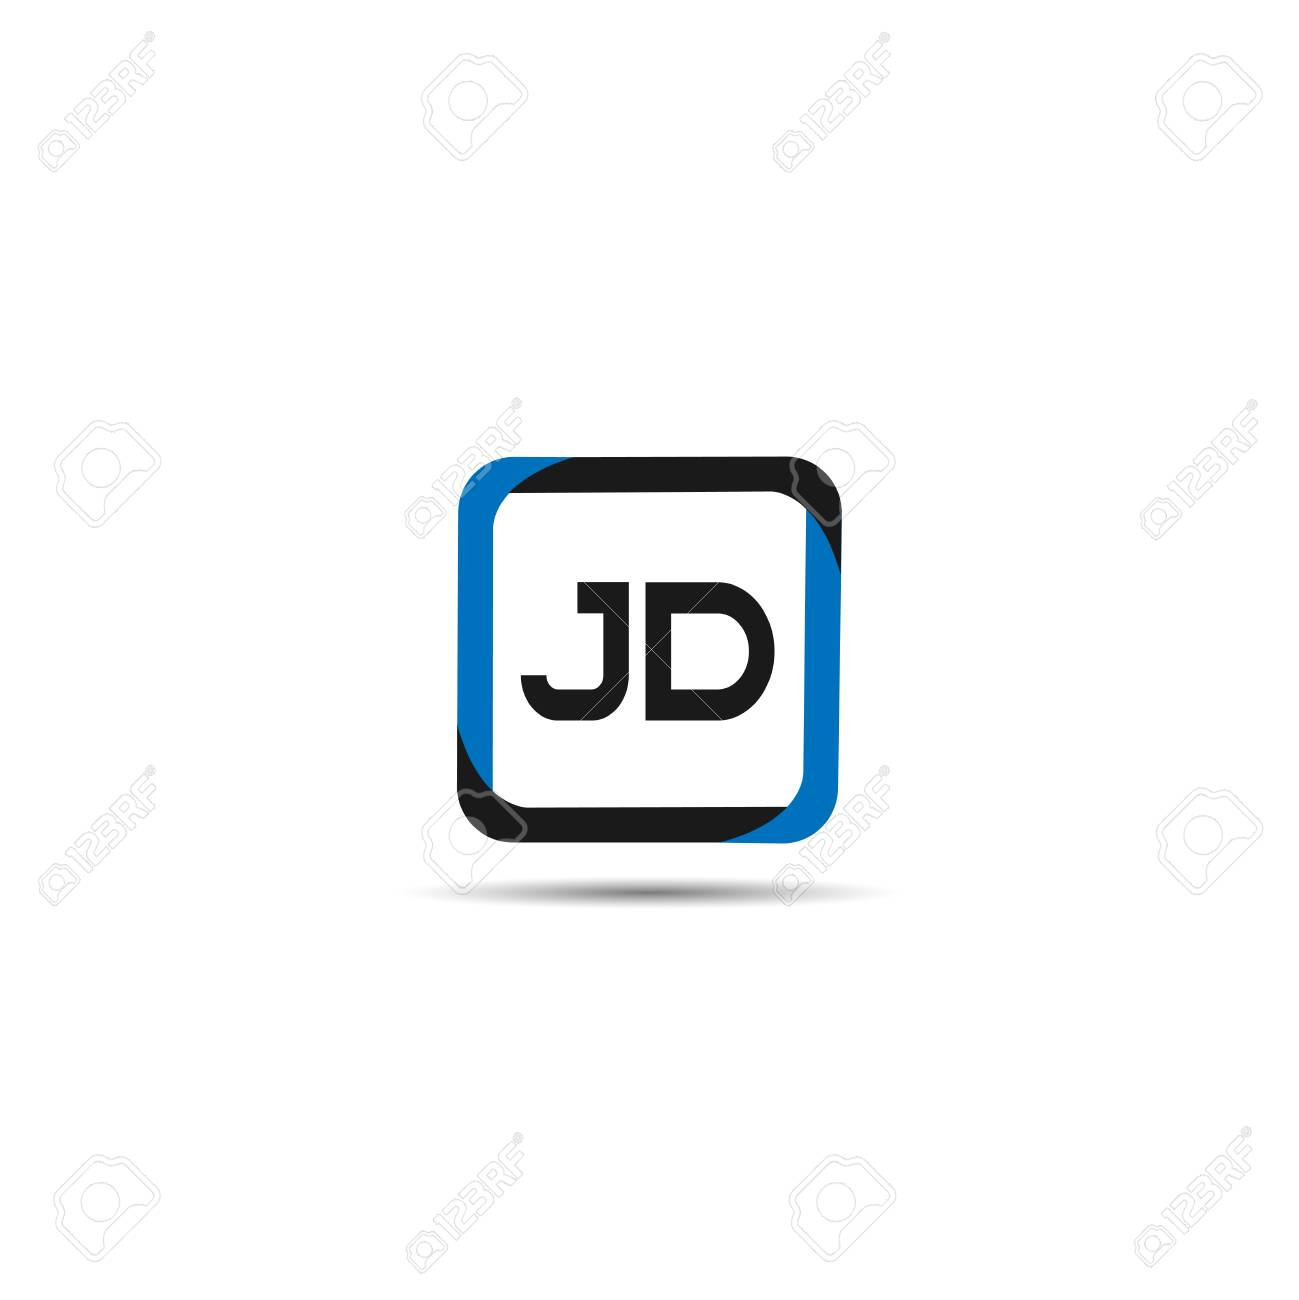 initial letter jd logo template design royalty free cliparts vectors and stock illustration image 109594812 initial letter jd logo template design